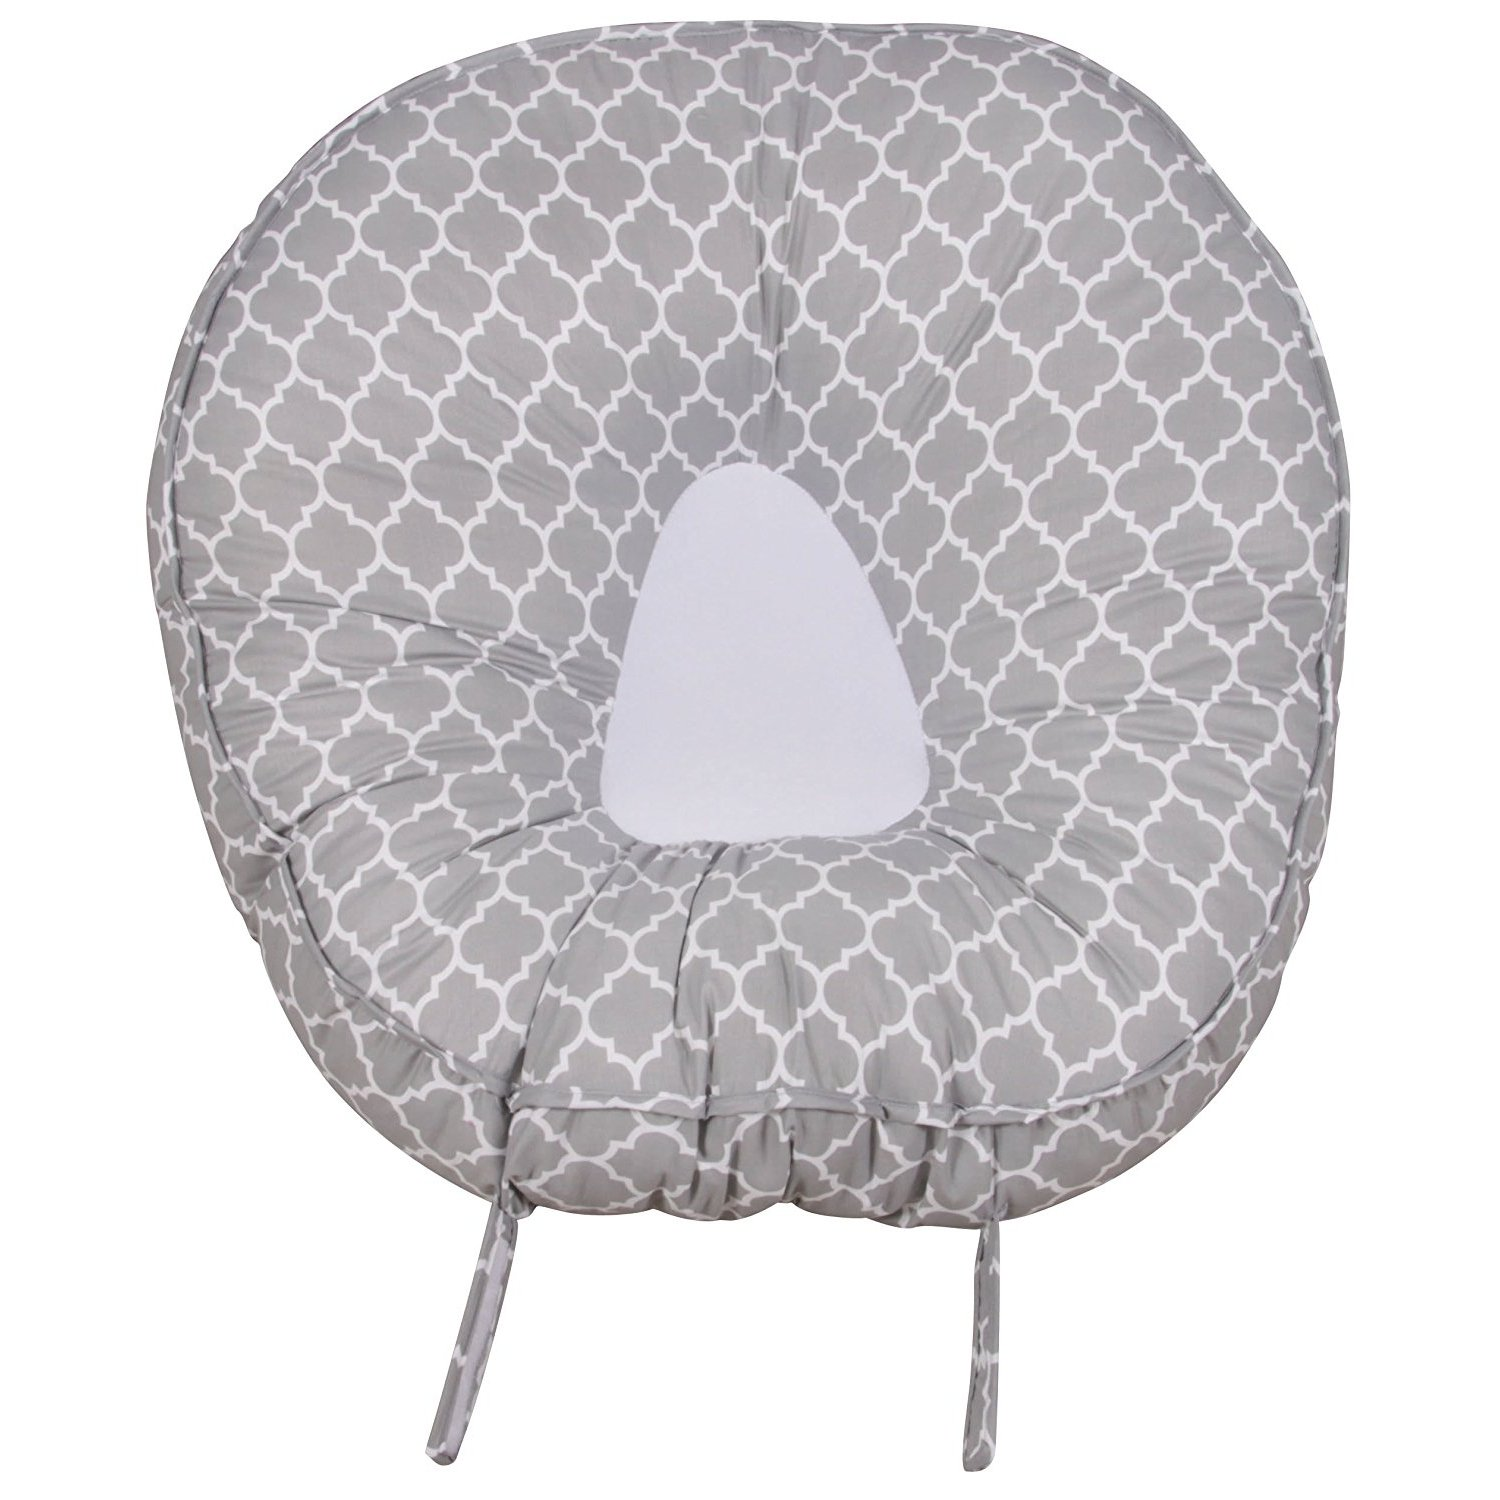 Amazon.com: Leachco Podster sling-style Infant Lounger ...